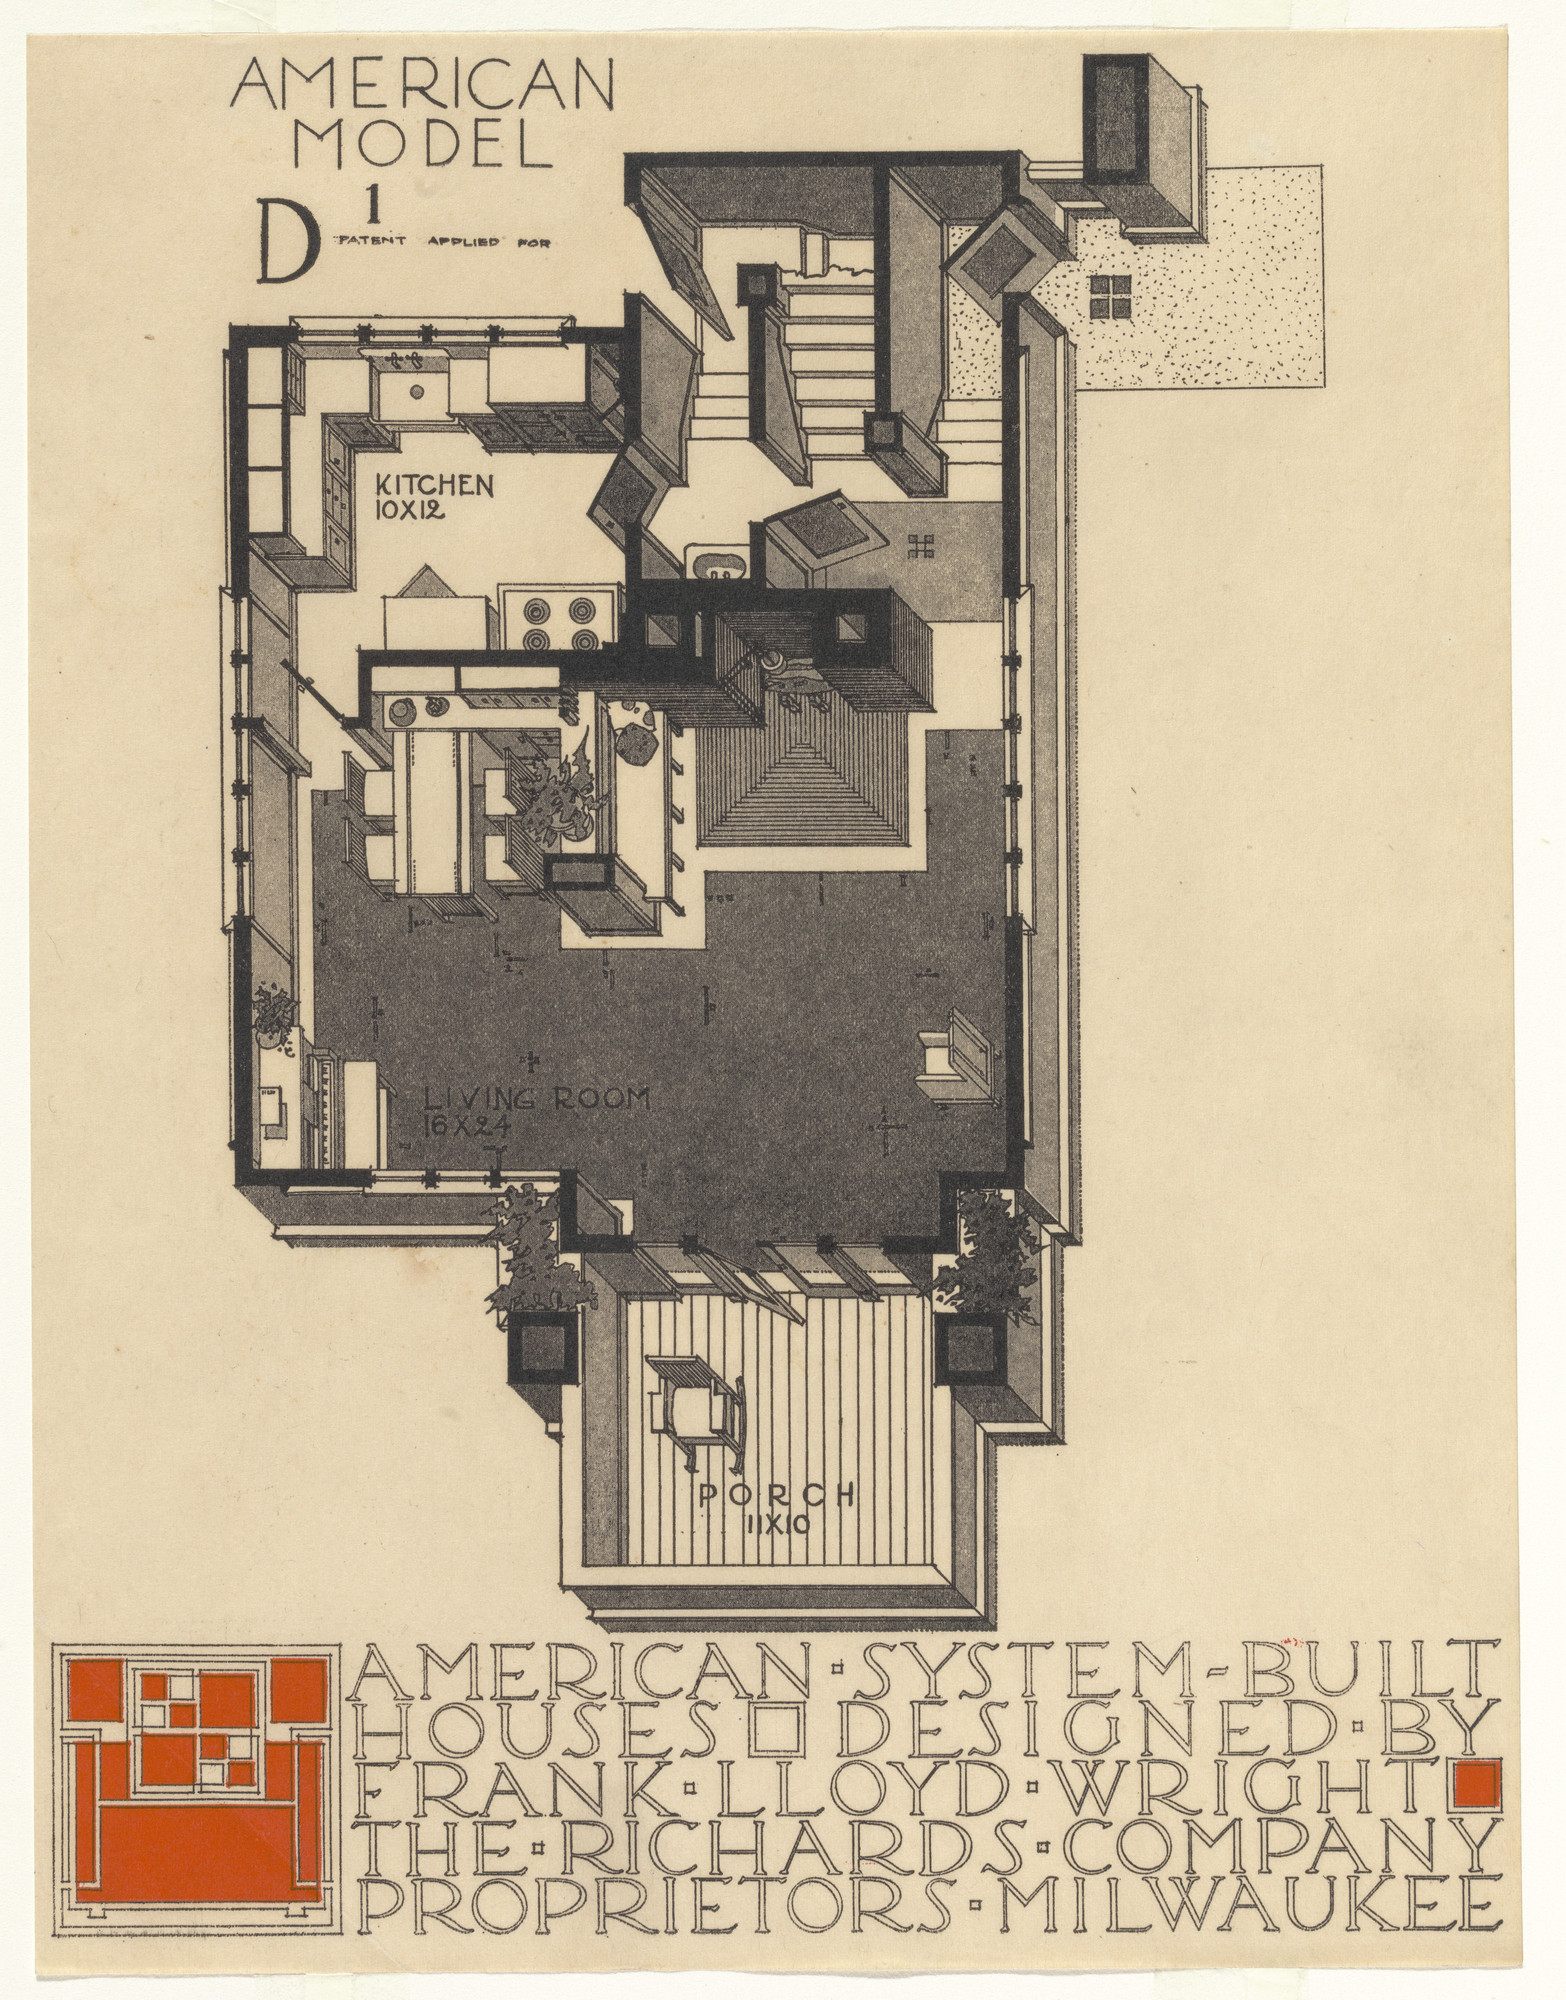 Frank Lloyd Wright. American System-Built Houses for The Richards Company project, Milwaukee, Wisconsin. 1915-17